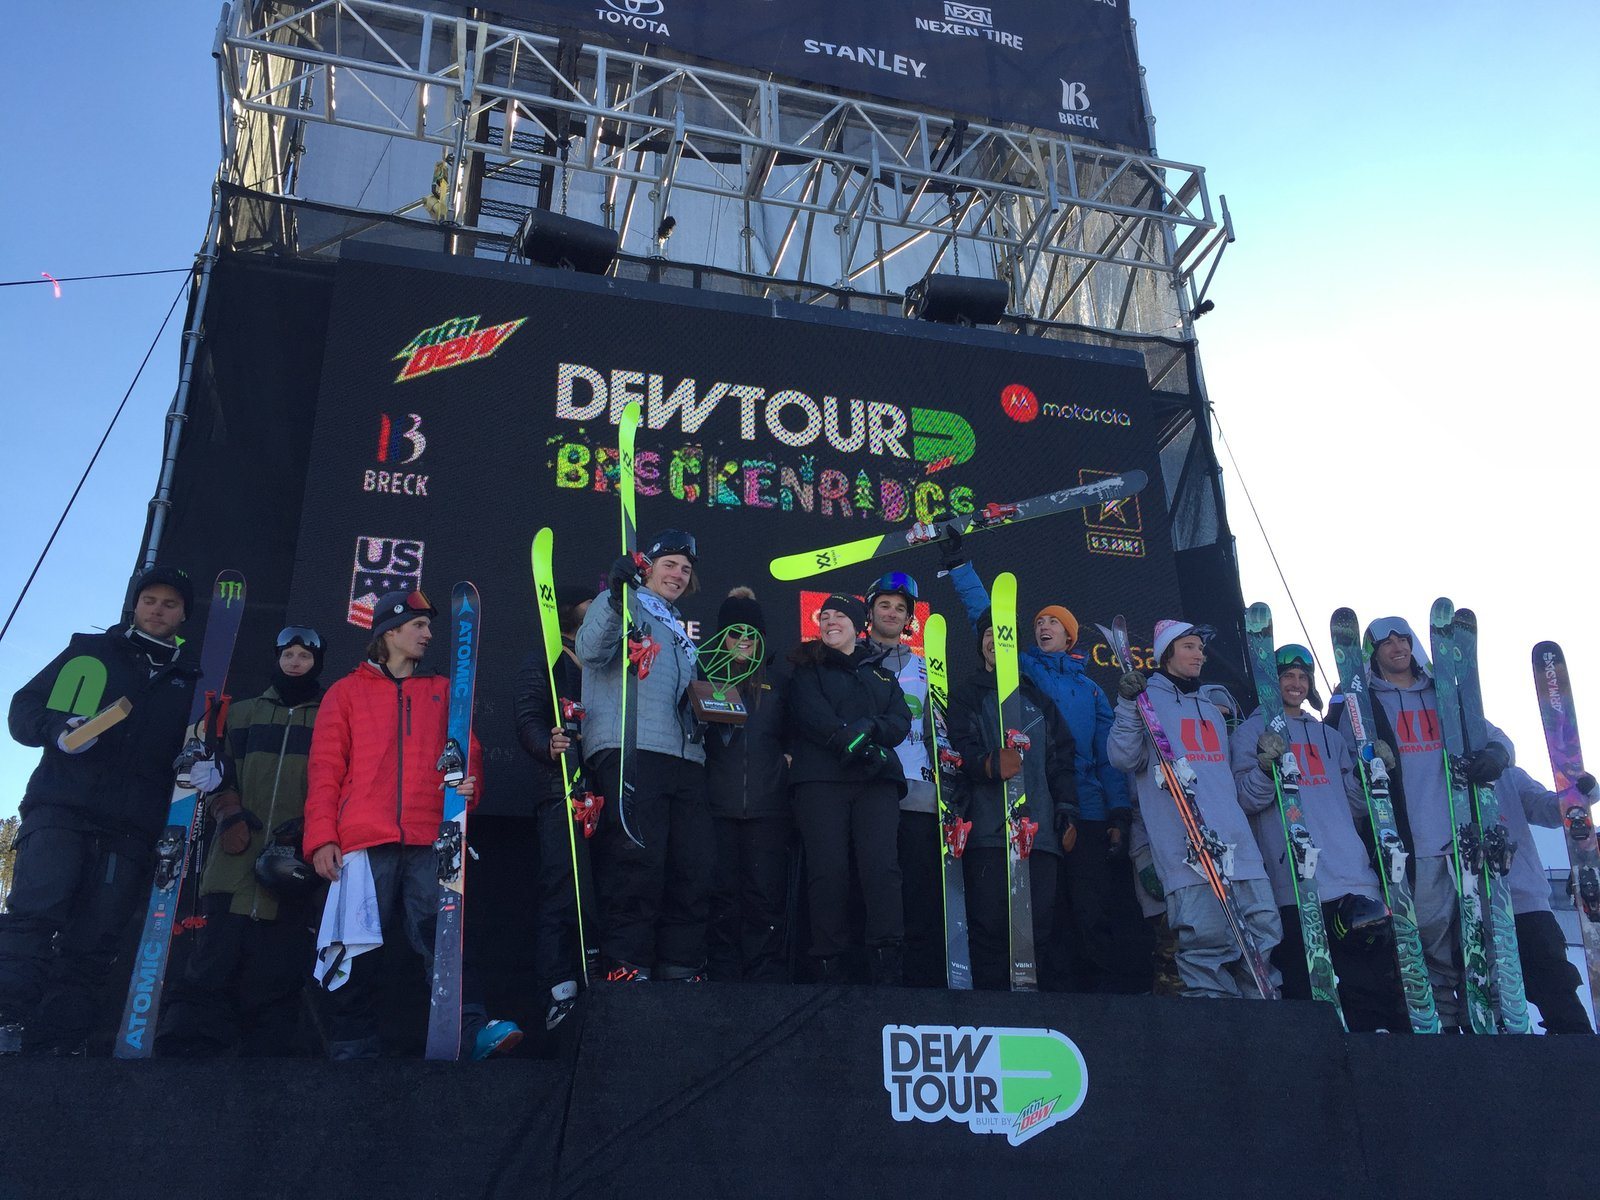 Dew tour podium